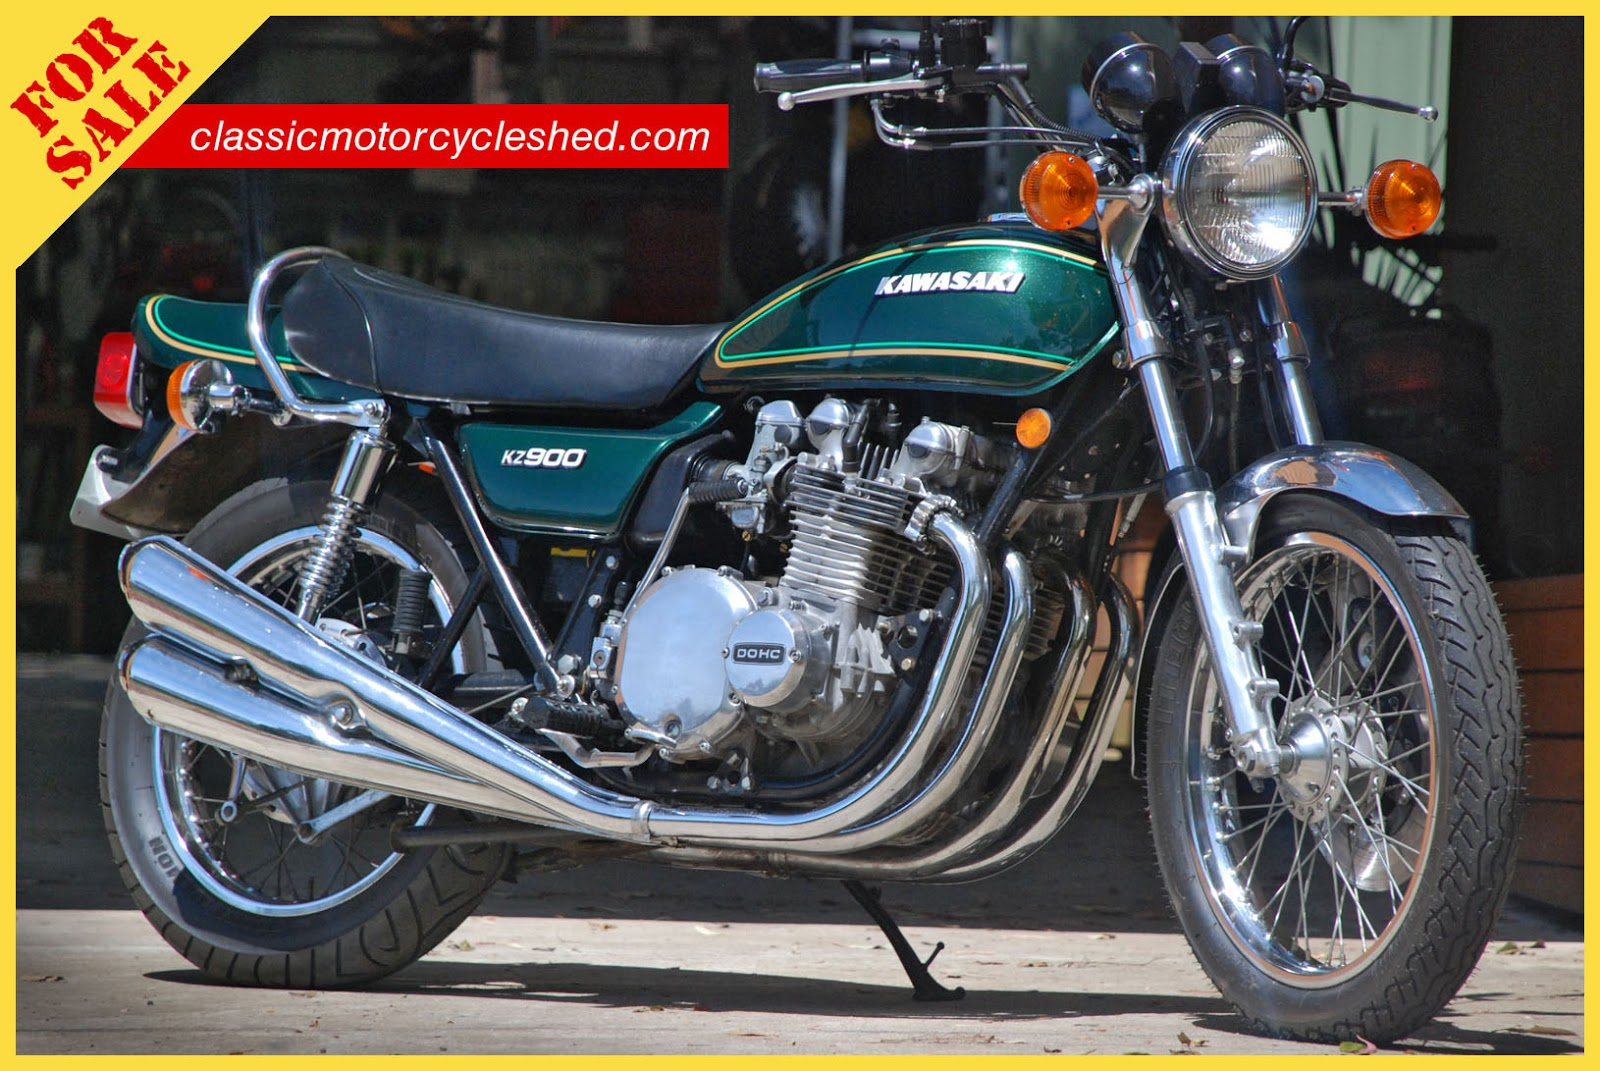 classic motorcycle shed: 1976 kawasaki kz900-a4 for sale